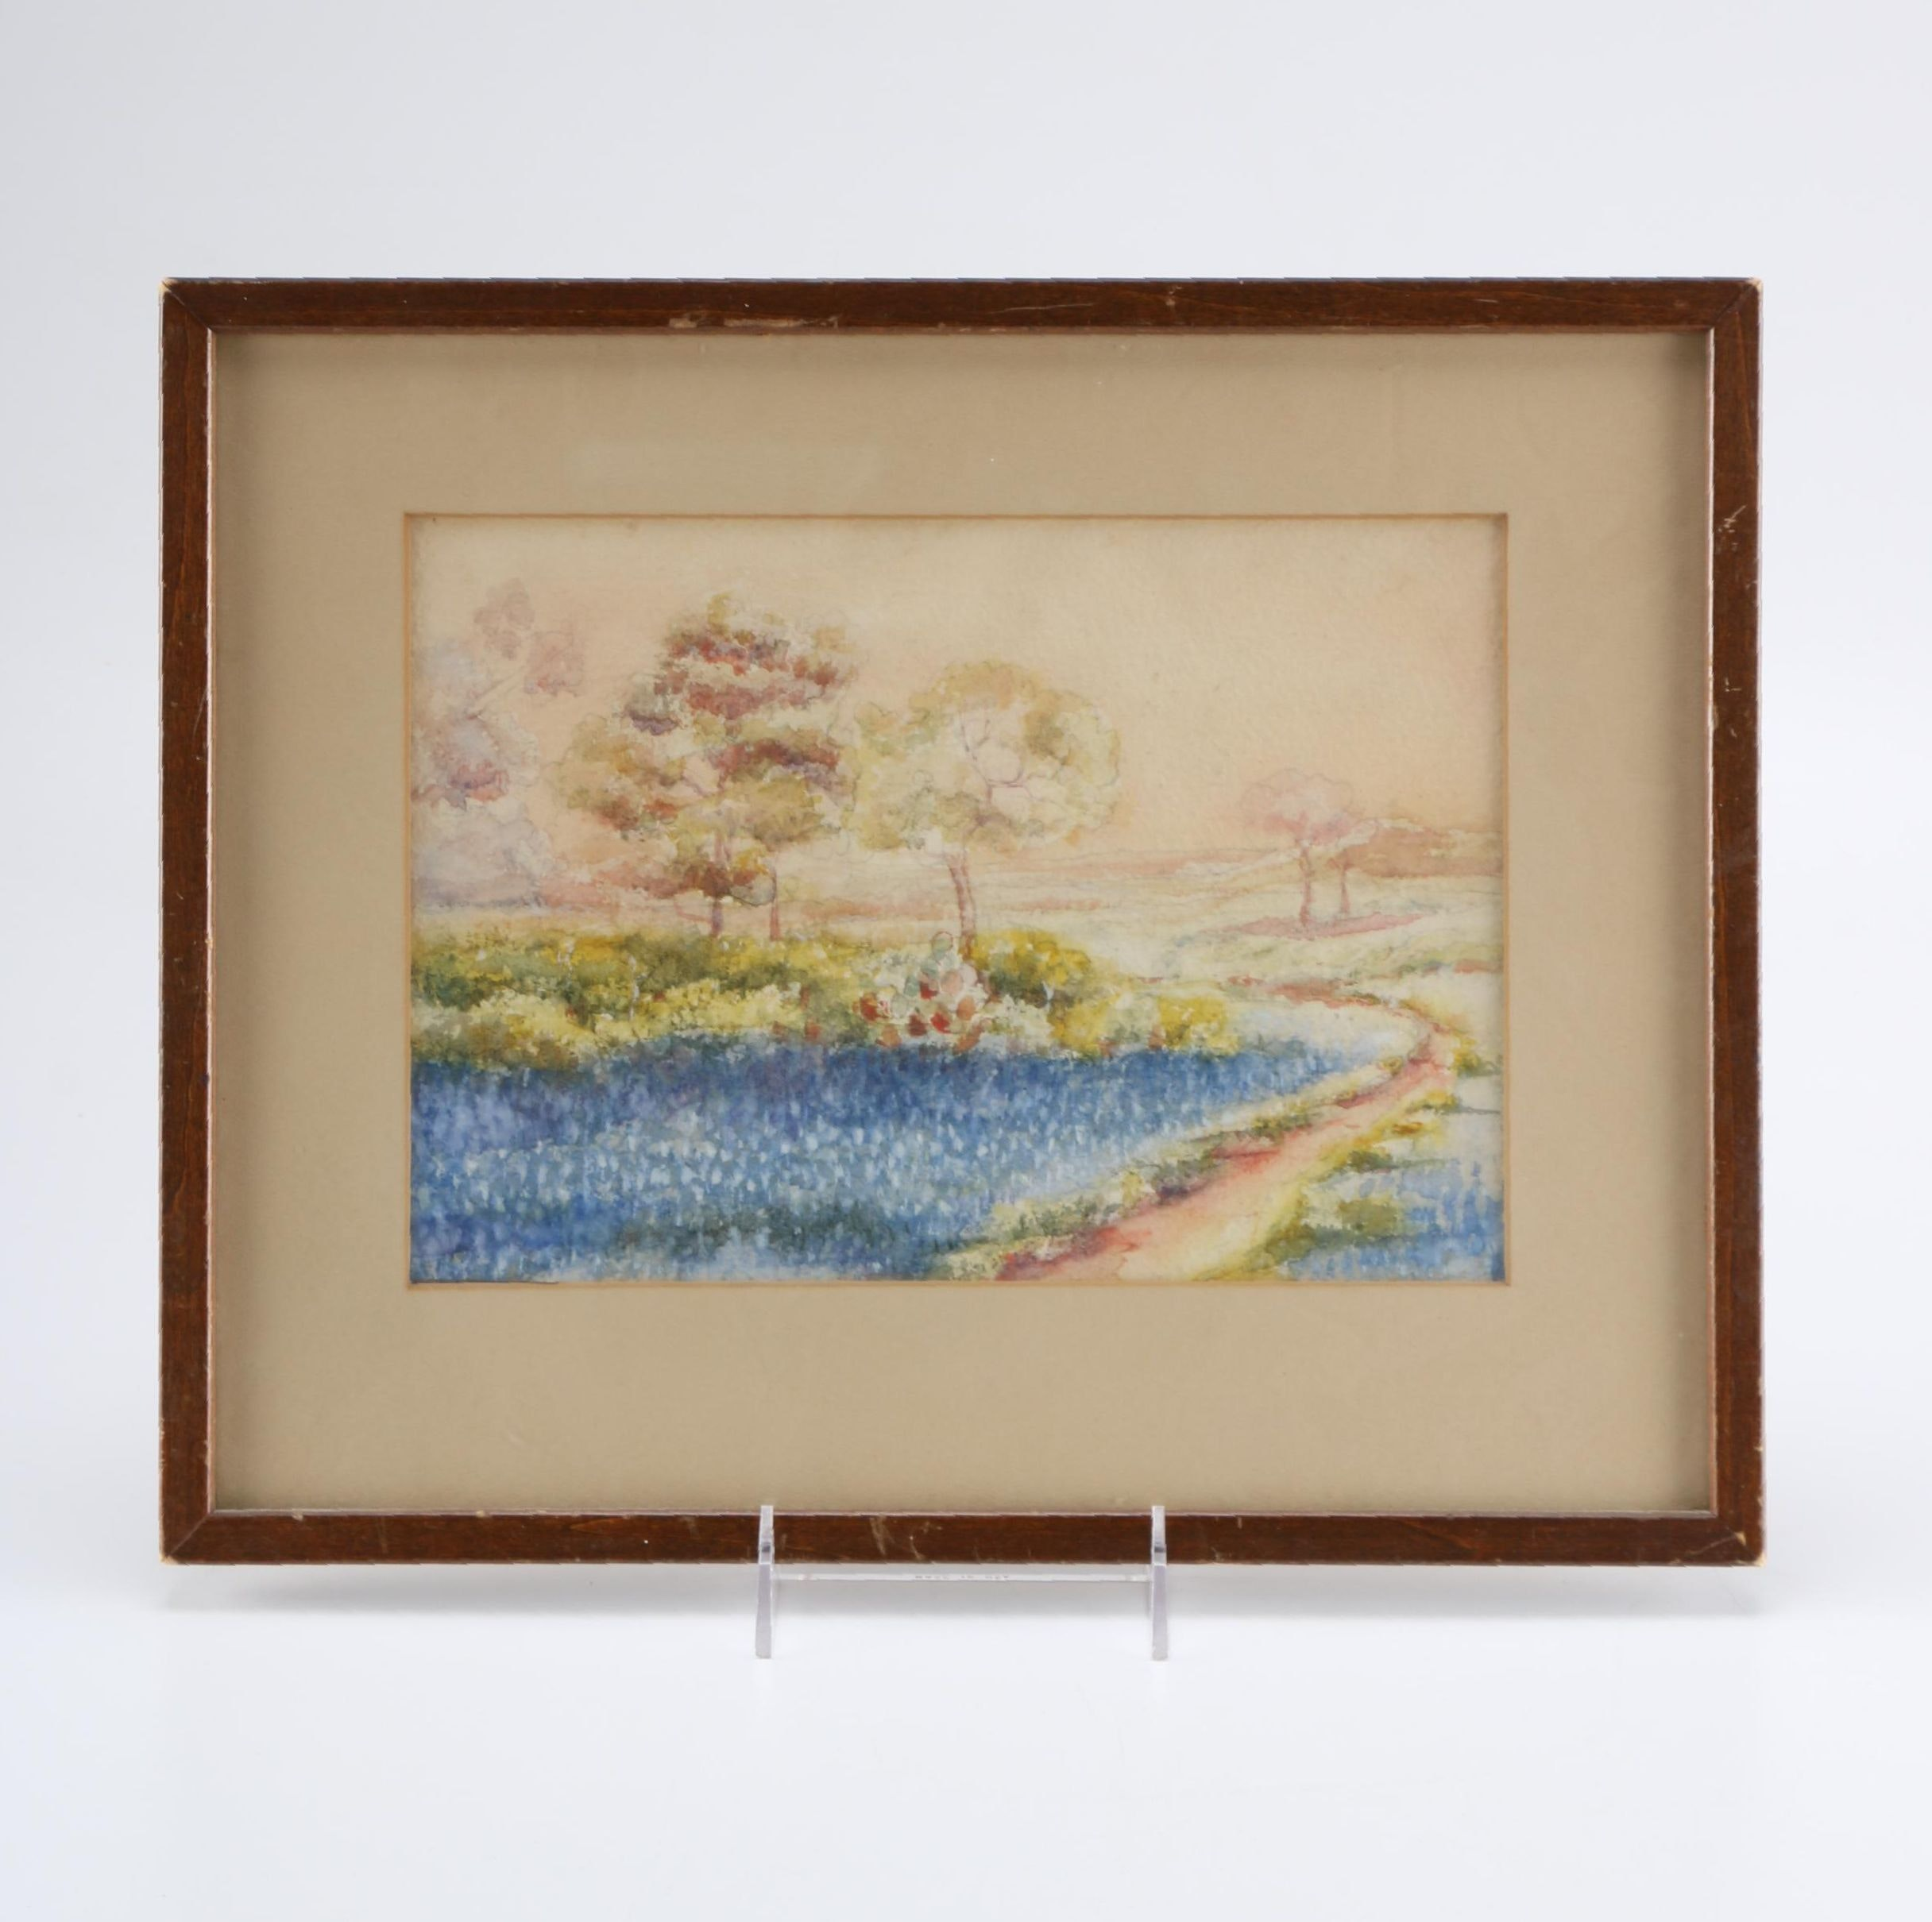 Watercolor on Paper Landscape Painting